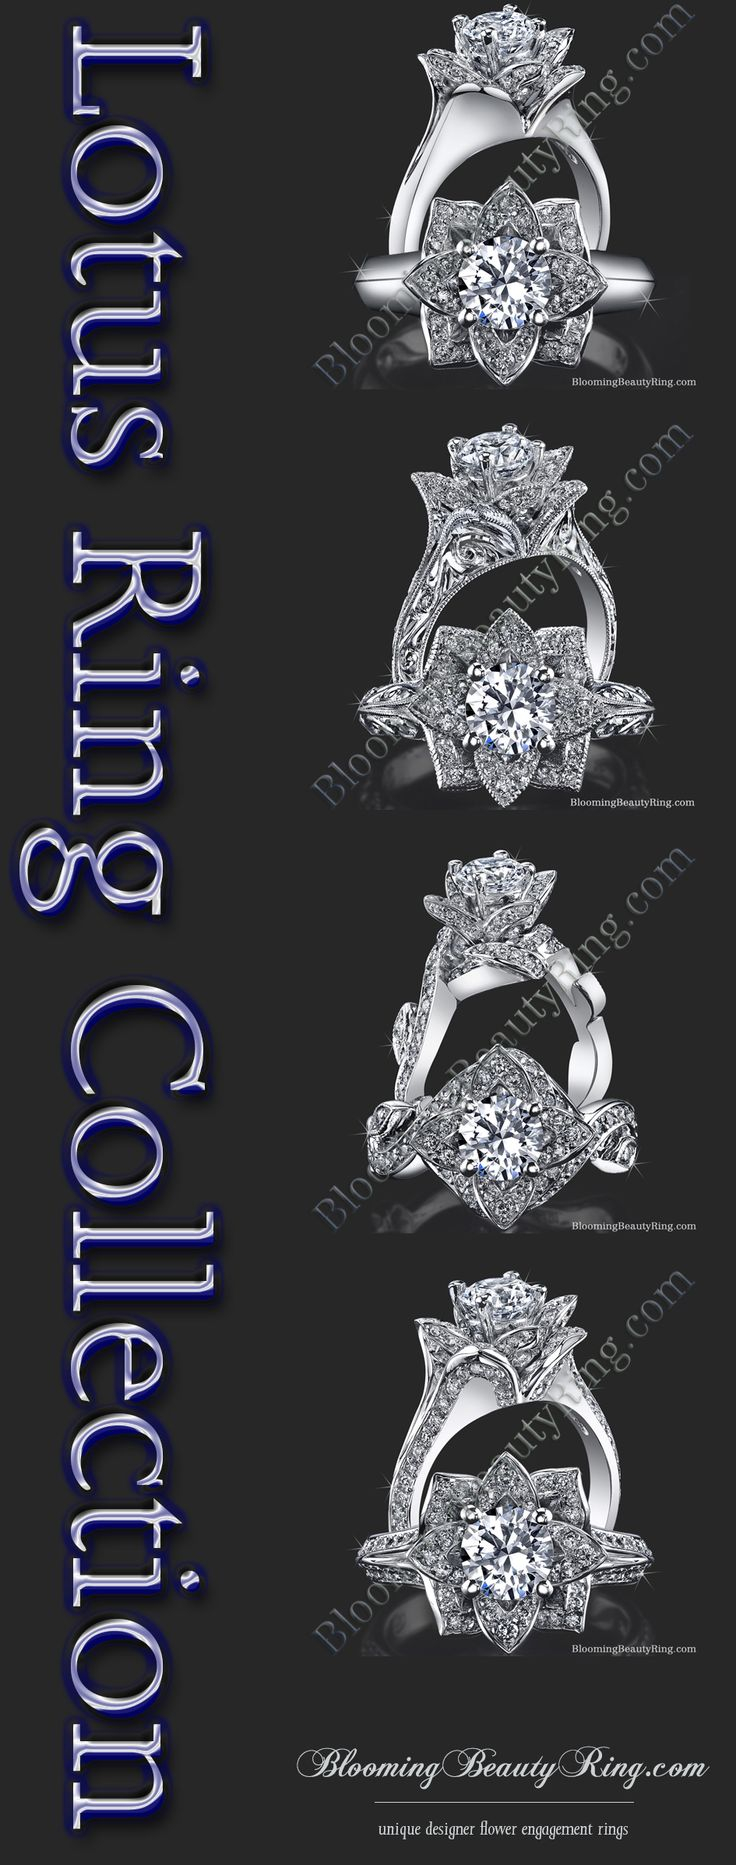 huge wedding rings lotus flower wedding ring Our lotus flower engagement rings mimic the very nature of the lotus Each ring like the actual lotus flower itself has petals that sit higher